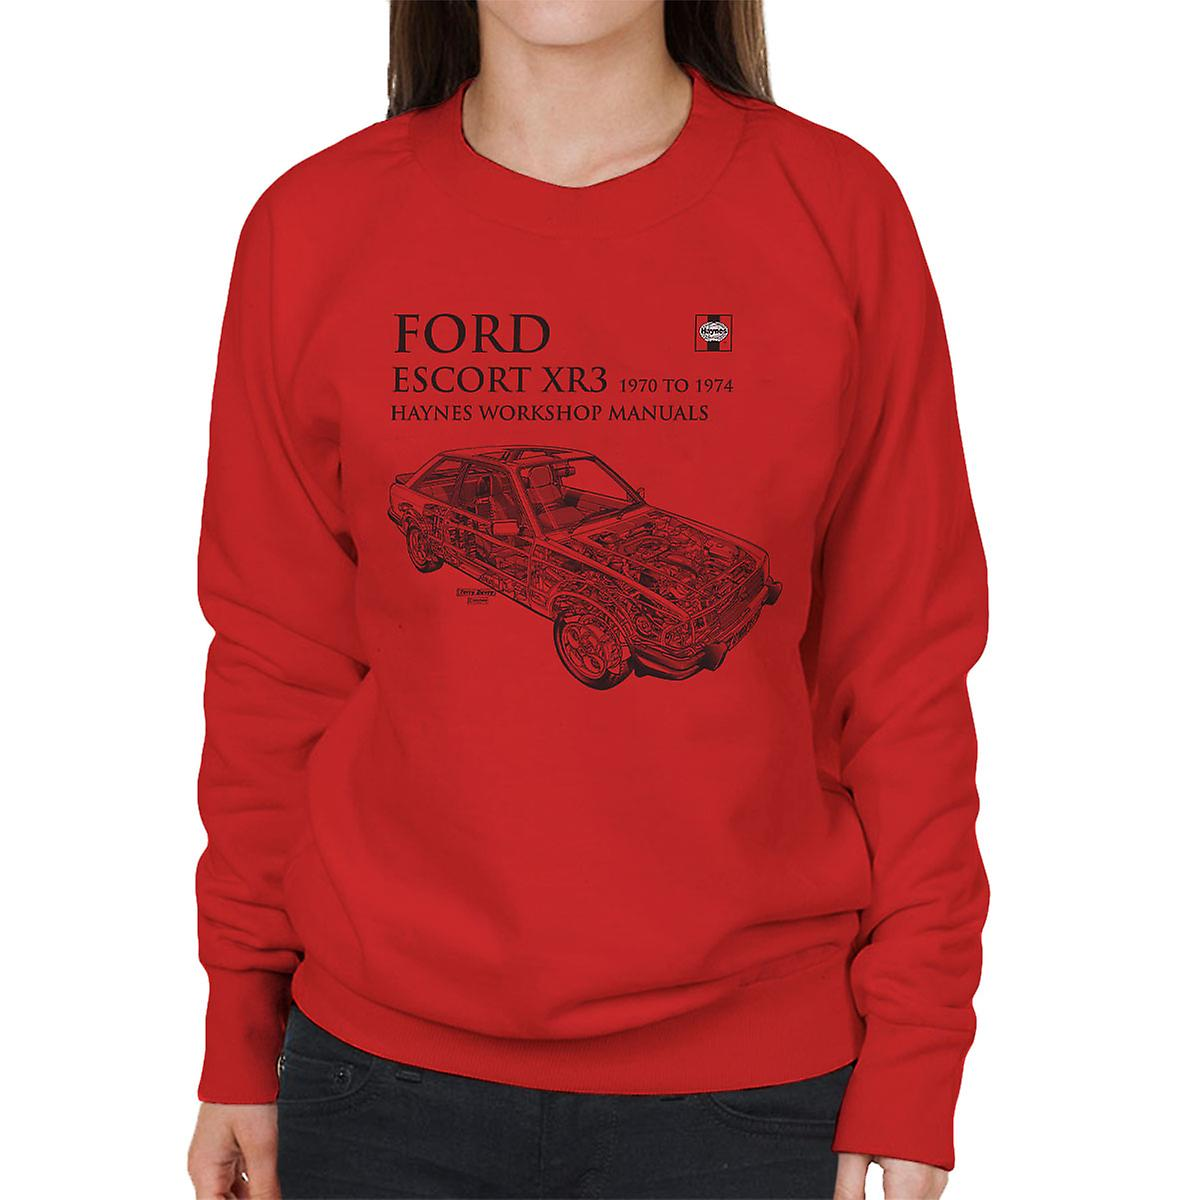 Haynes Owners Workshop Manual 0686 Ford Escort XR3 Black Women's Sweatshirt